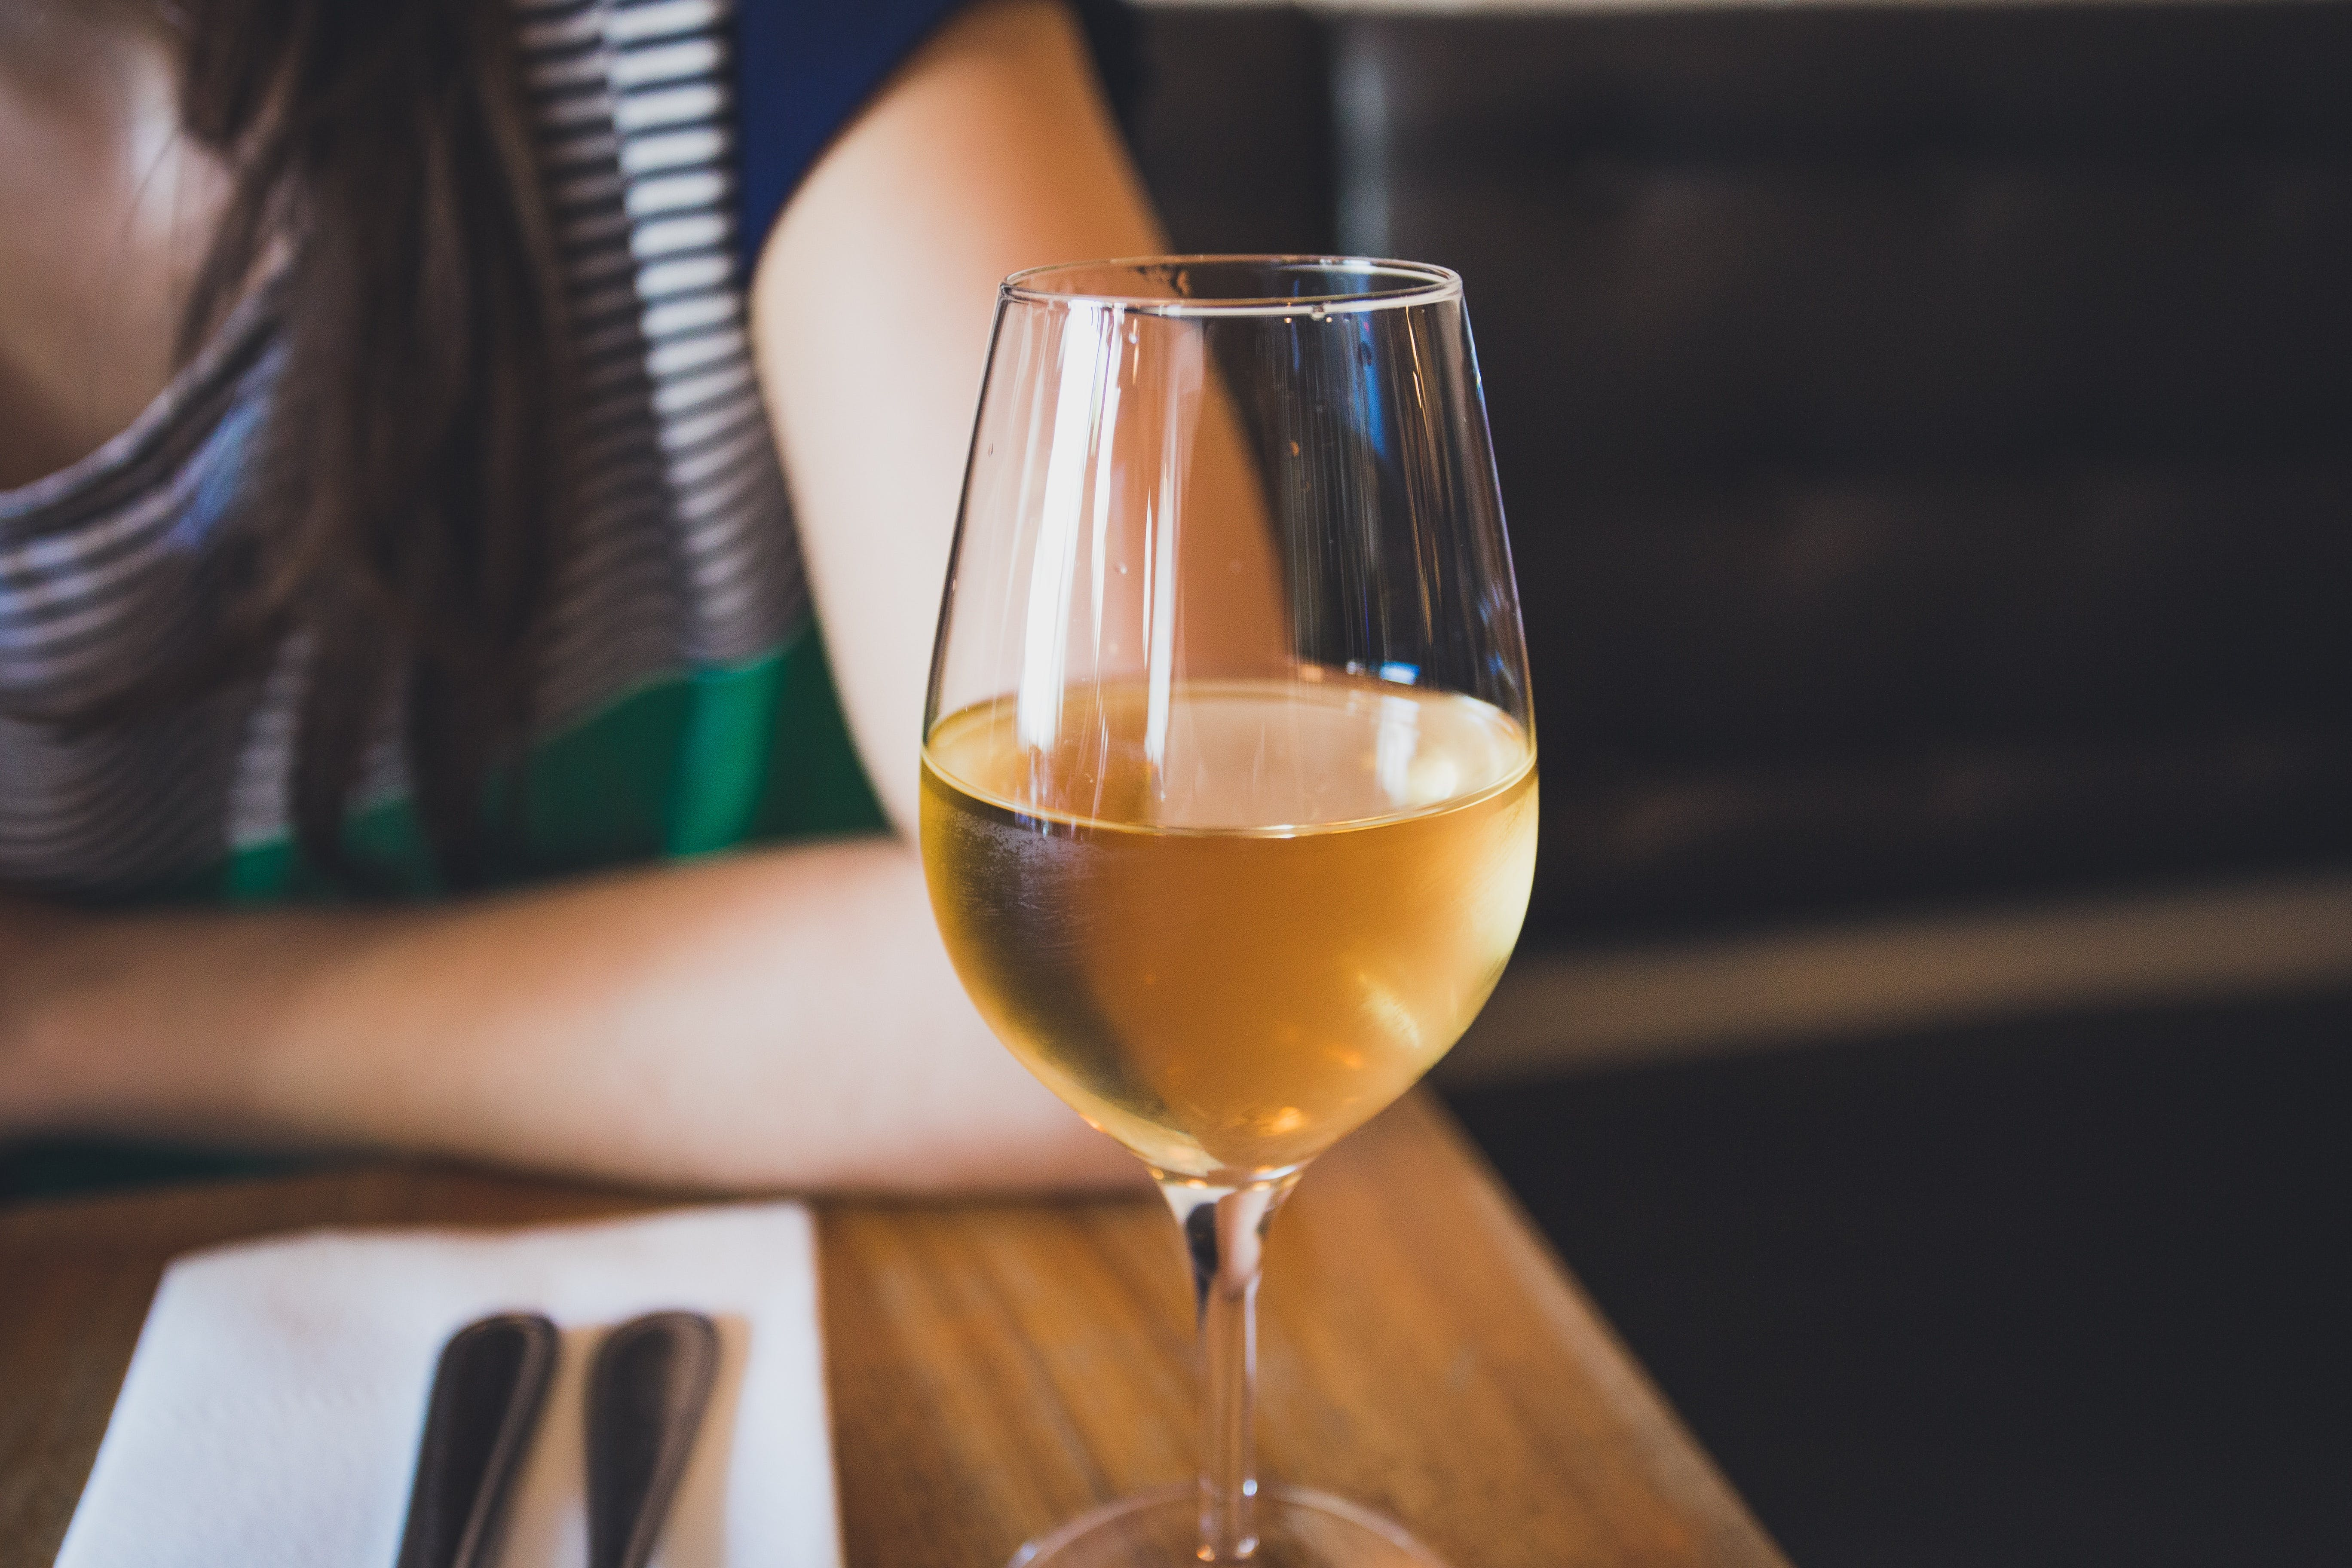 a glass of white wine on a table